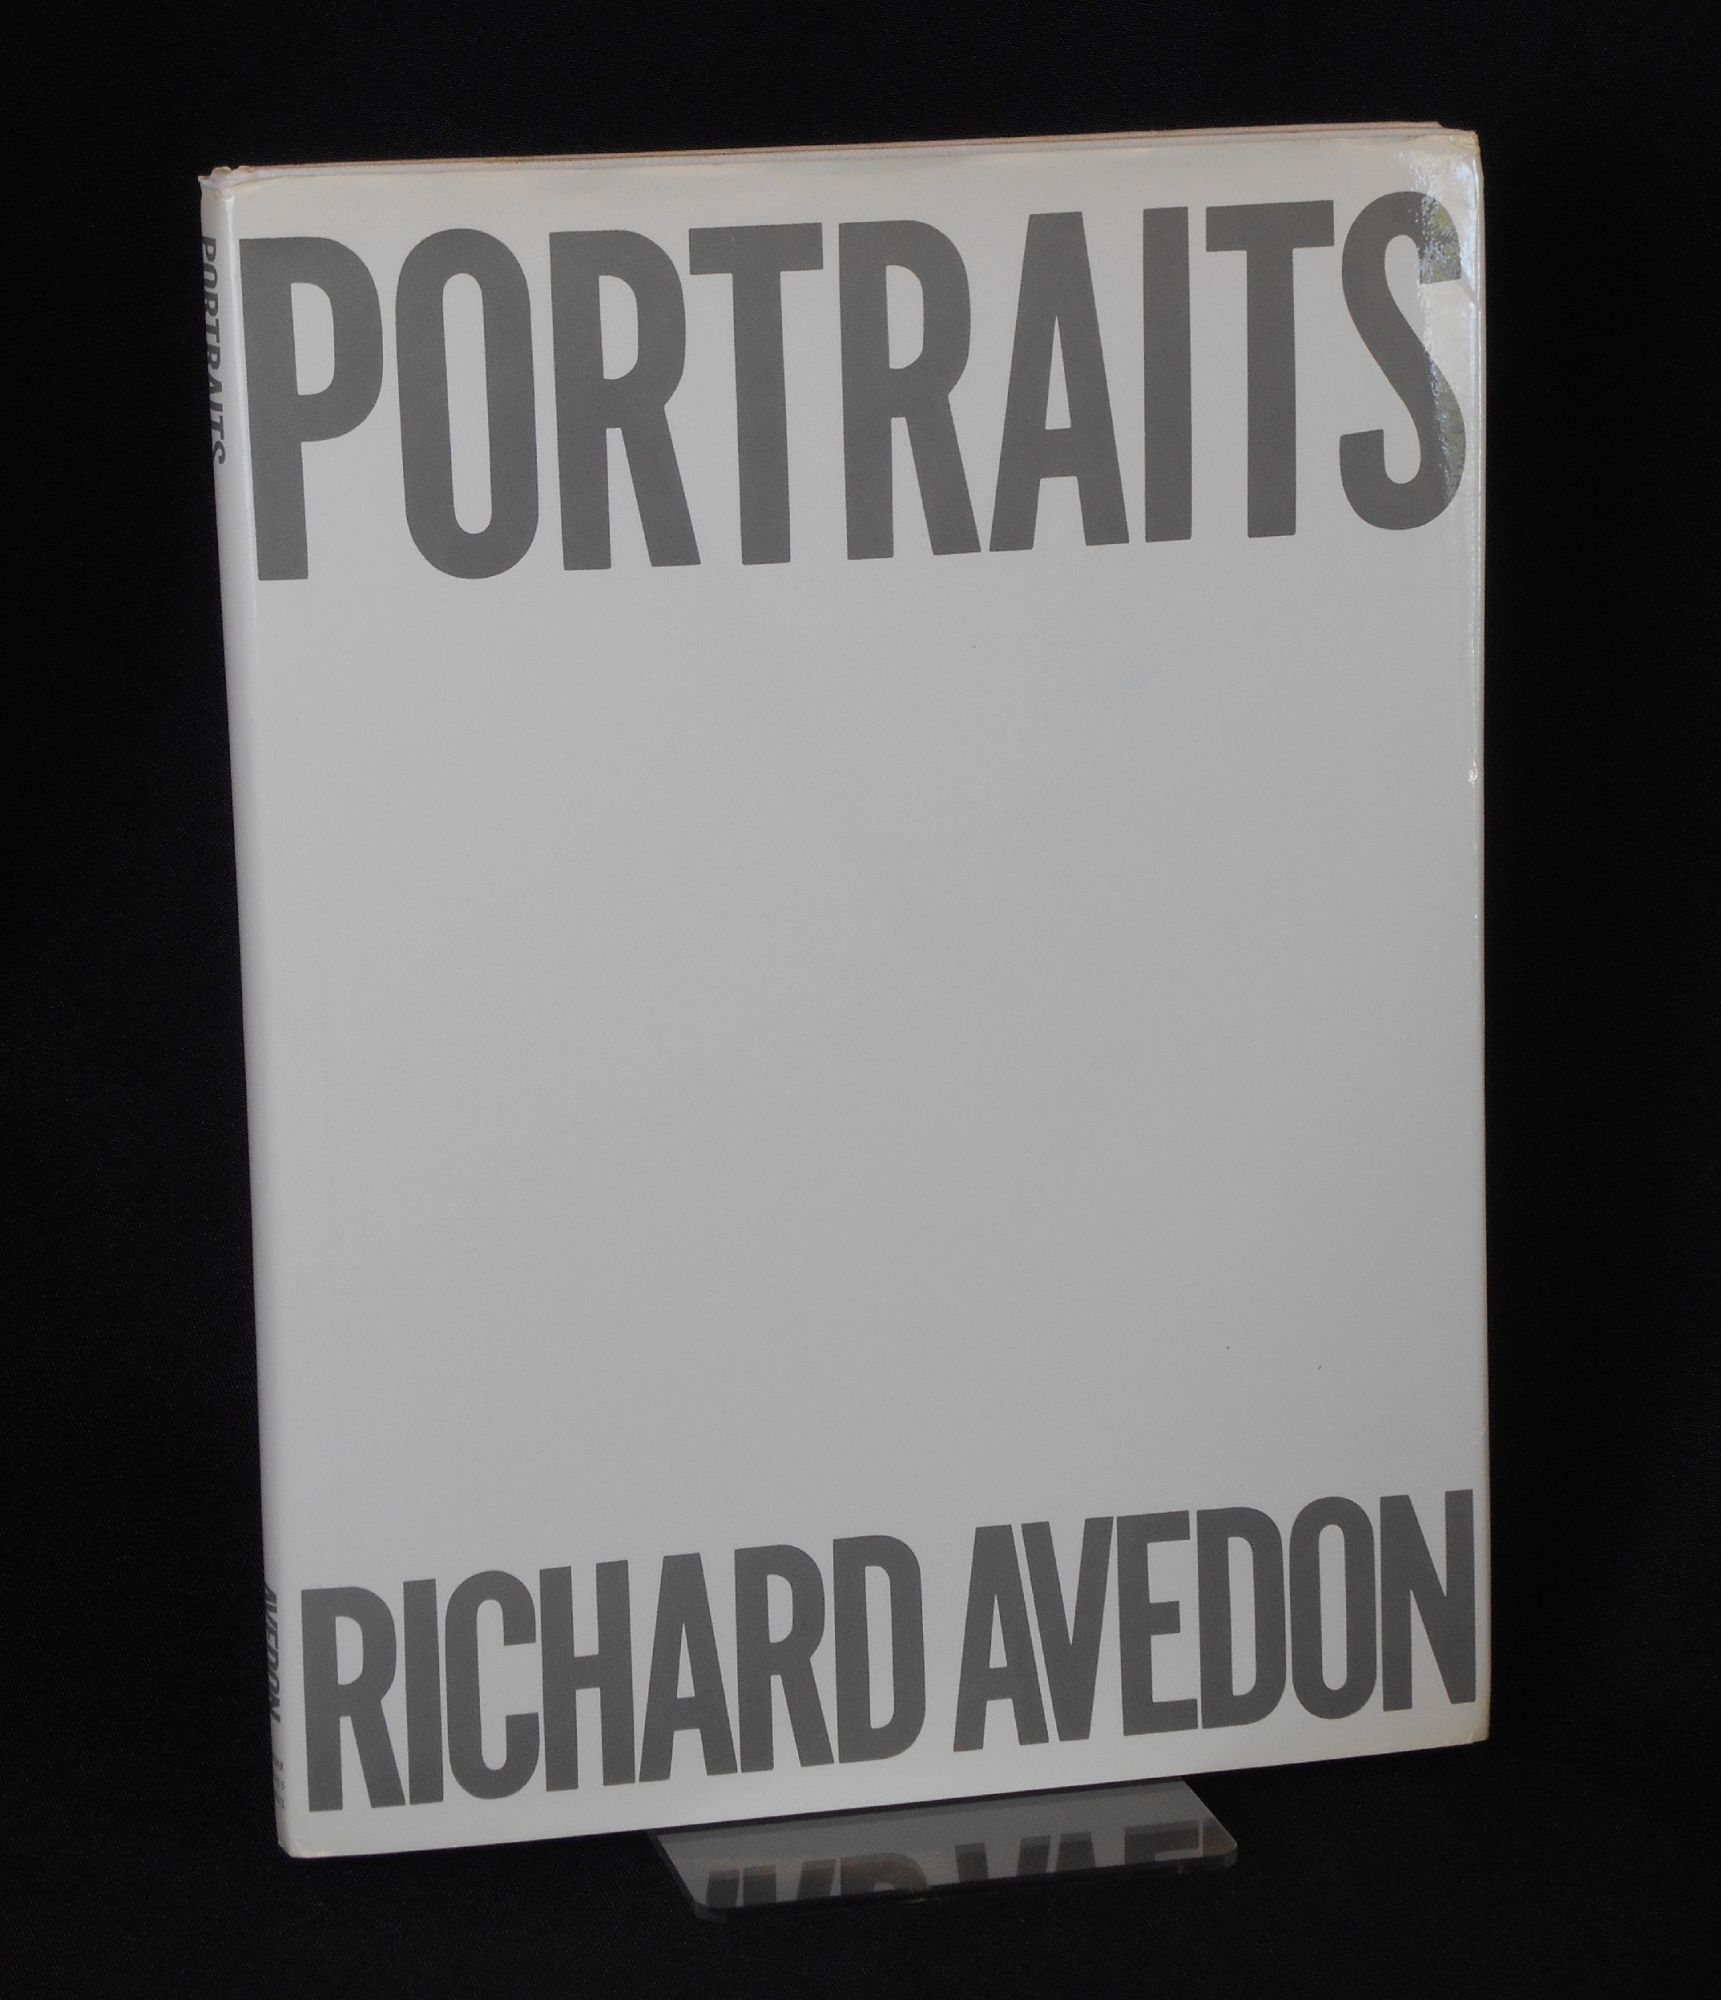 Portraits  Richard Avedon Harold Rosenberg Artistphotographer  Portraits Online High School Summer School also Business Plan Writing Services San Francisco  Persuasive Essay Samples High School